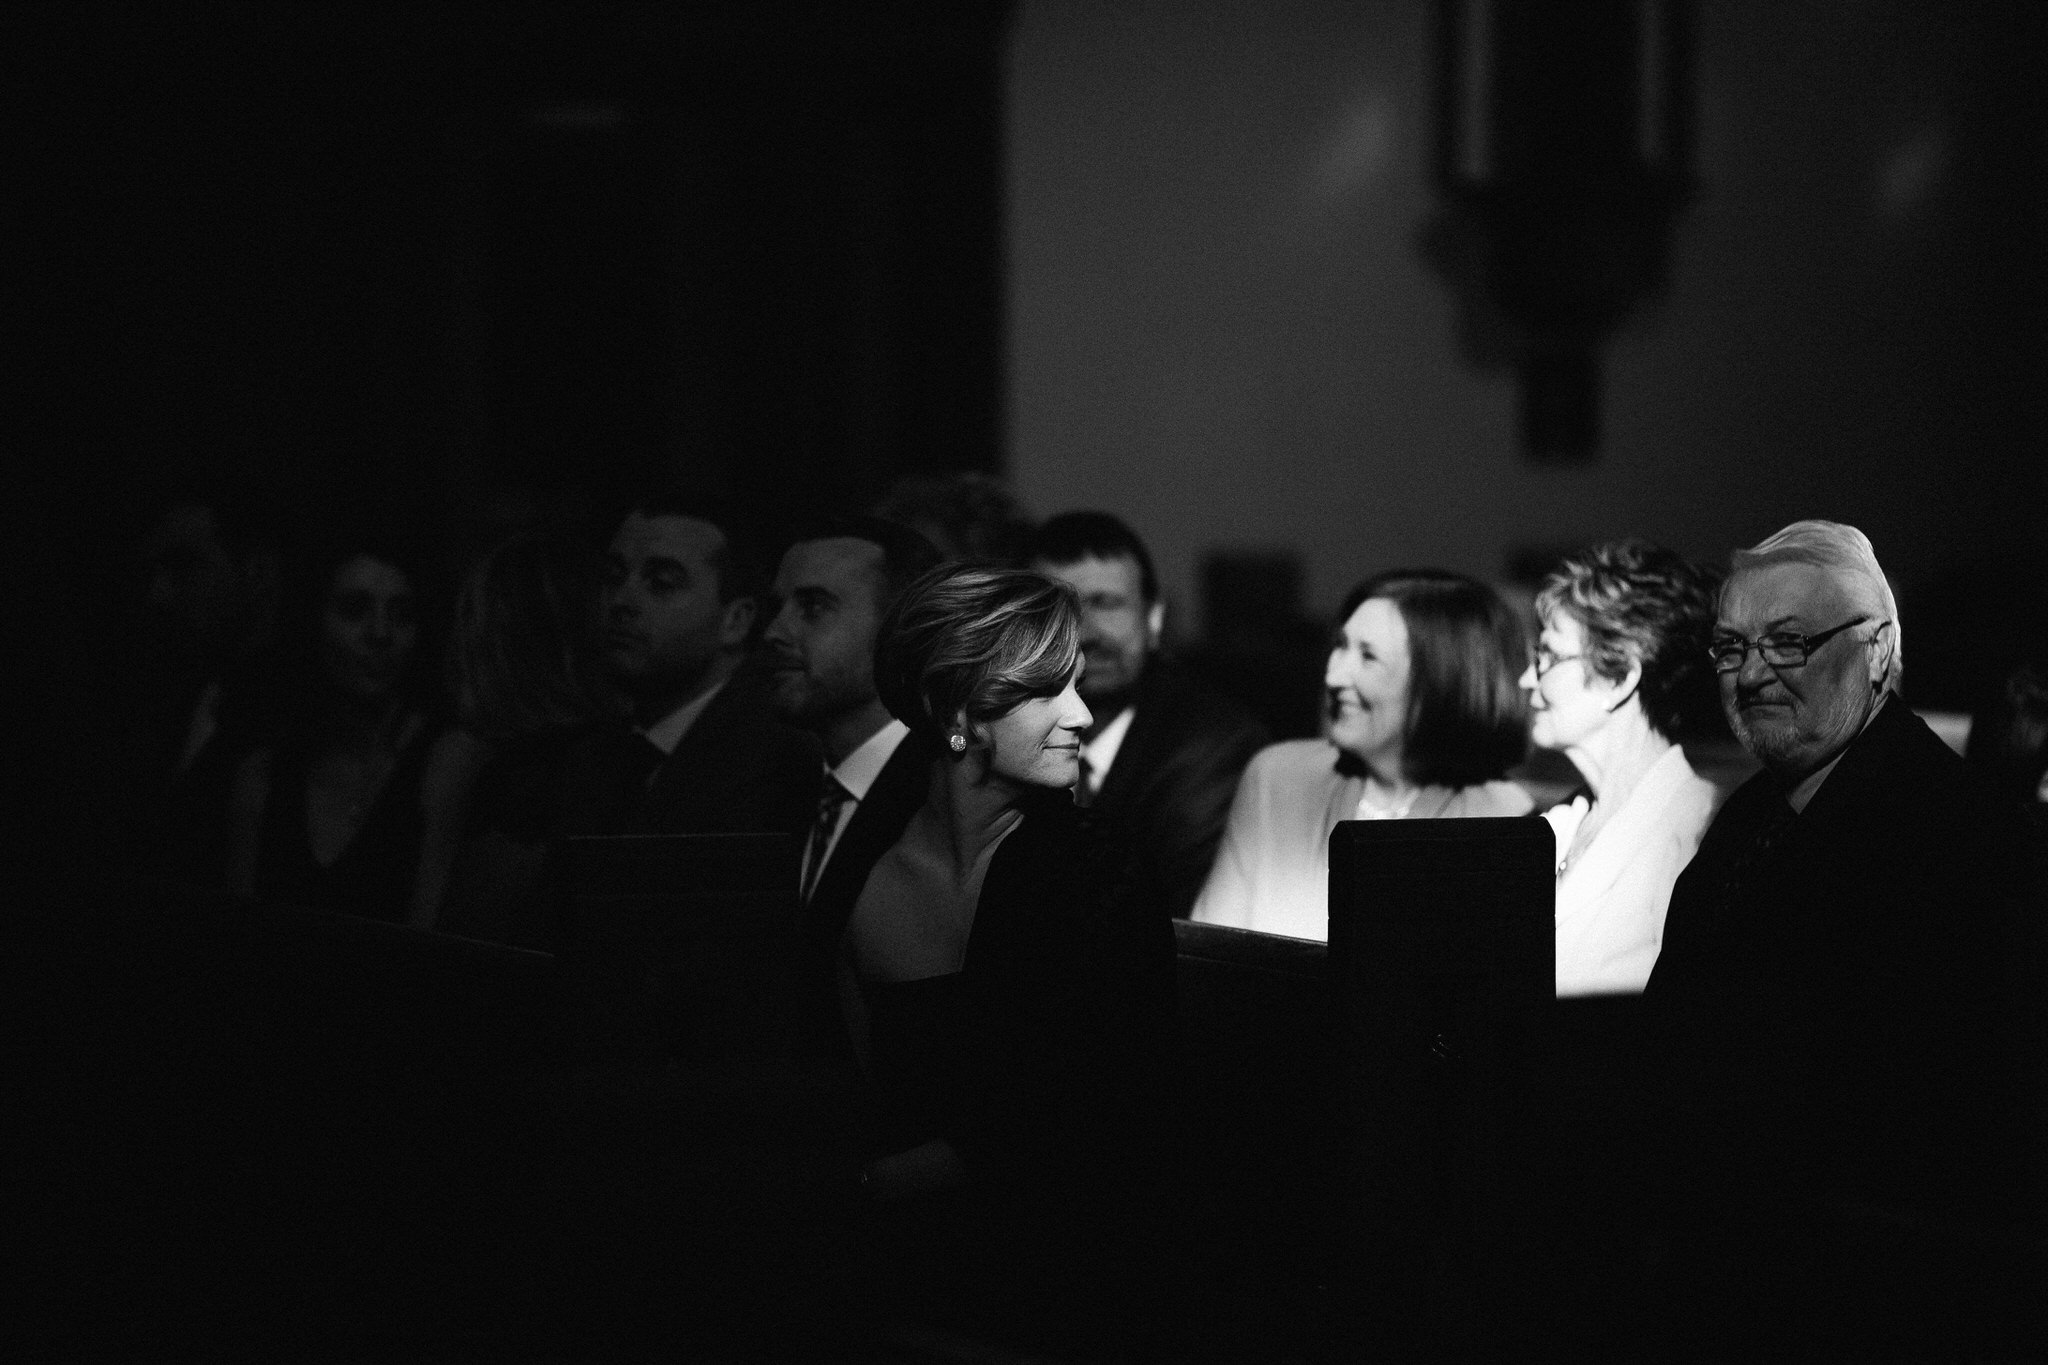 Blessed sacrament parish toronto, toronto wedding, church wedding, wedding photographer toronto, berkeley church wedding, wedding guests